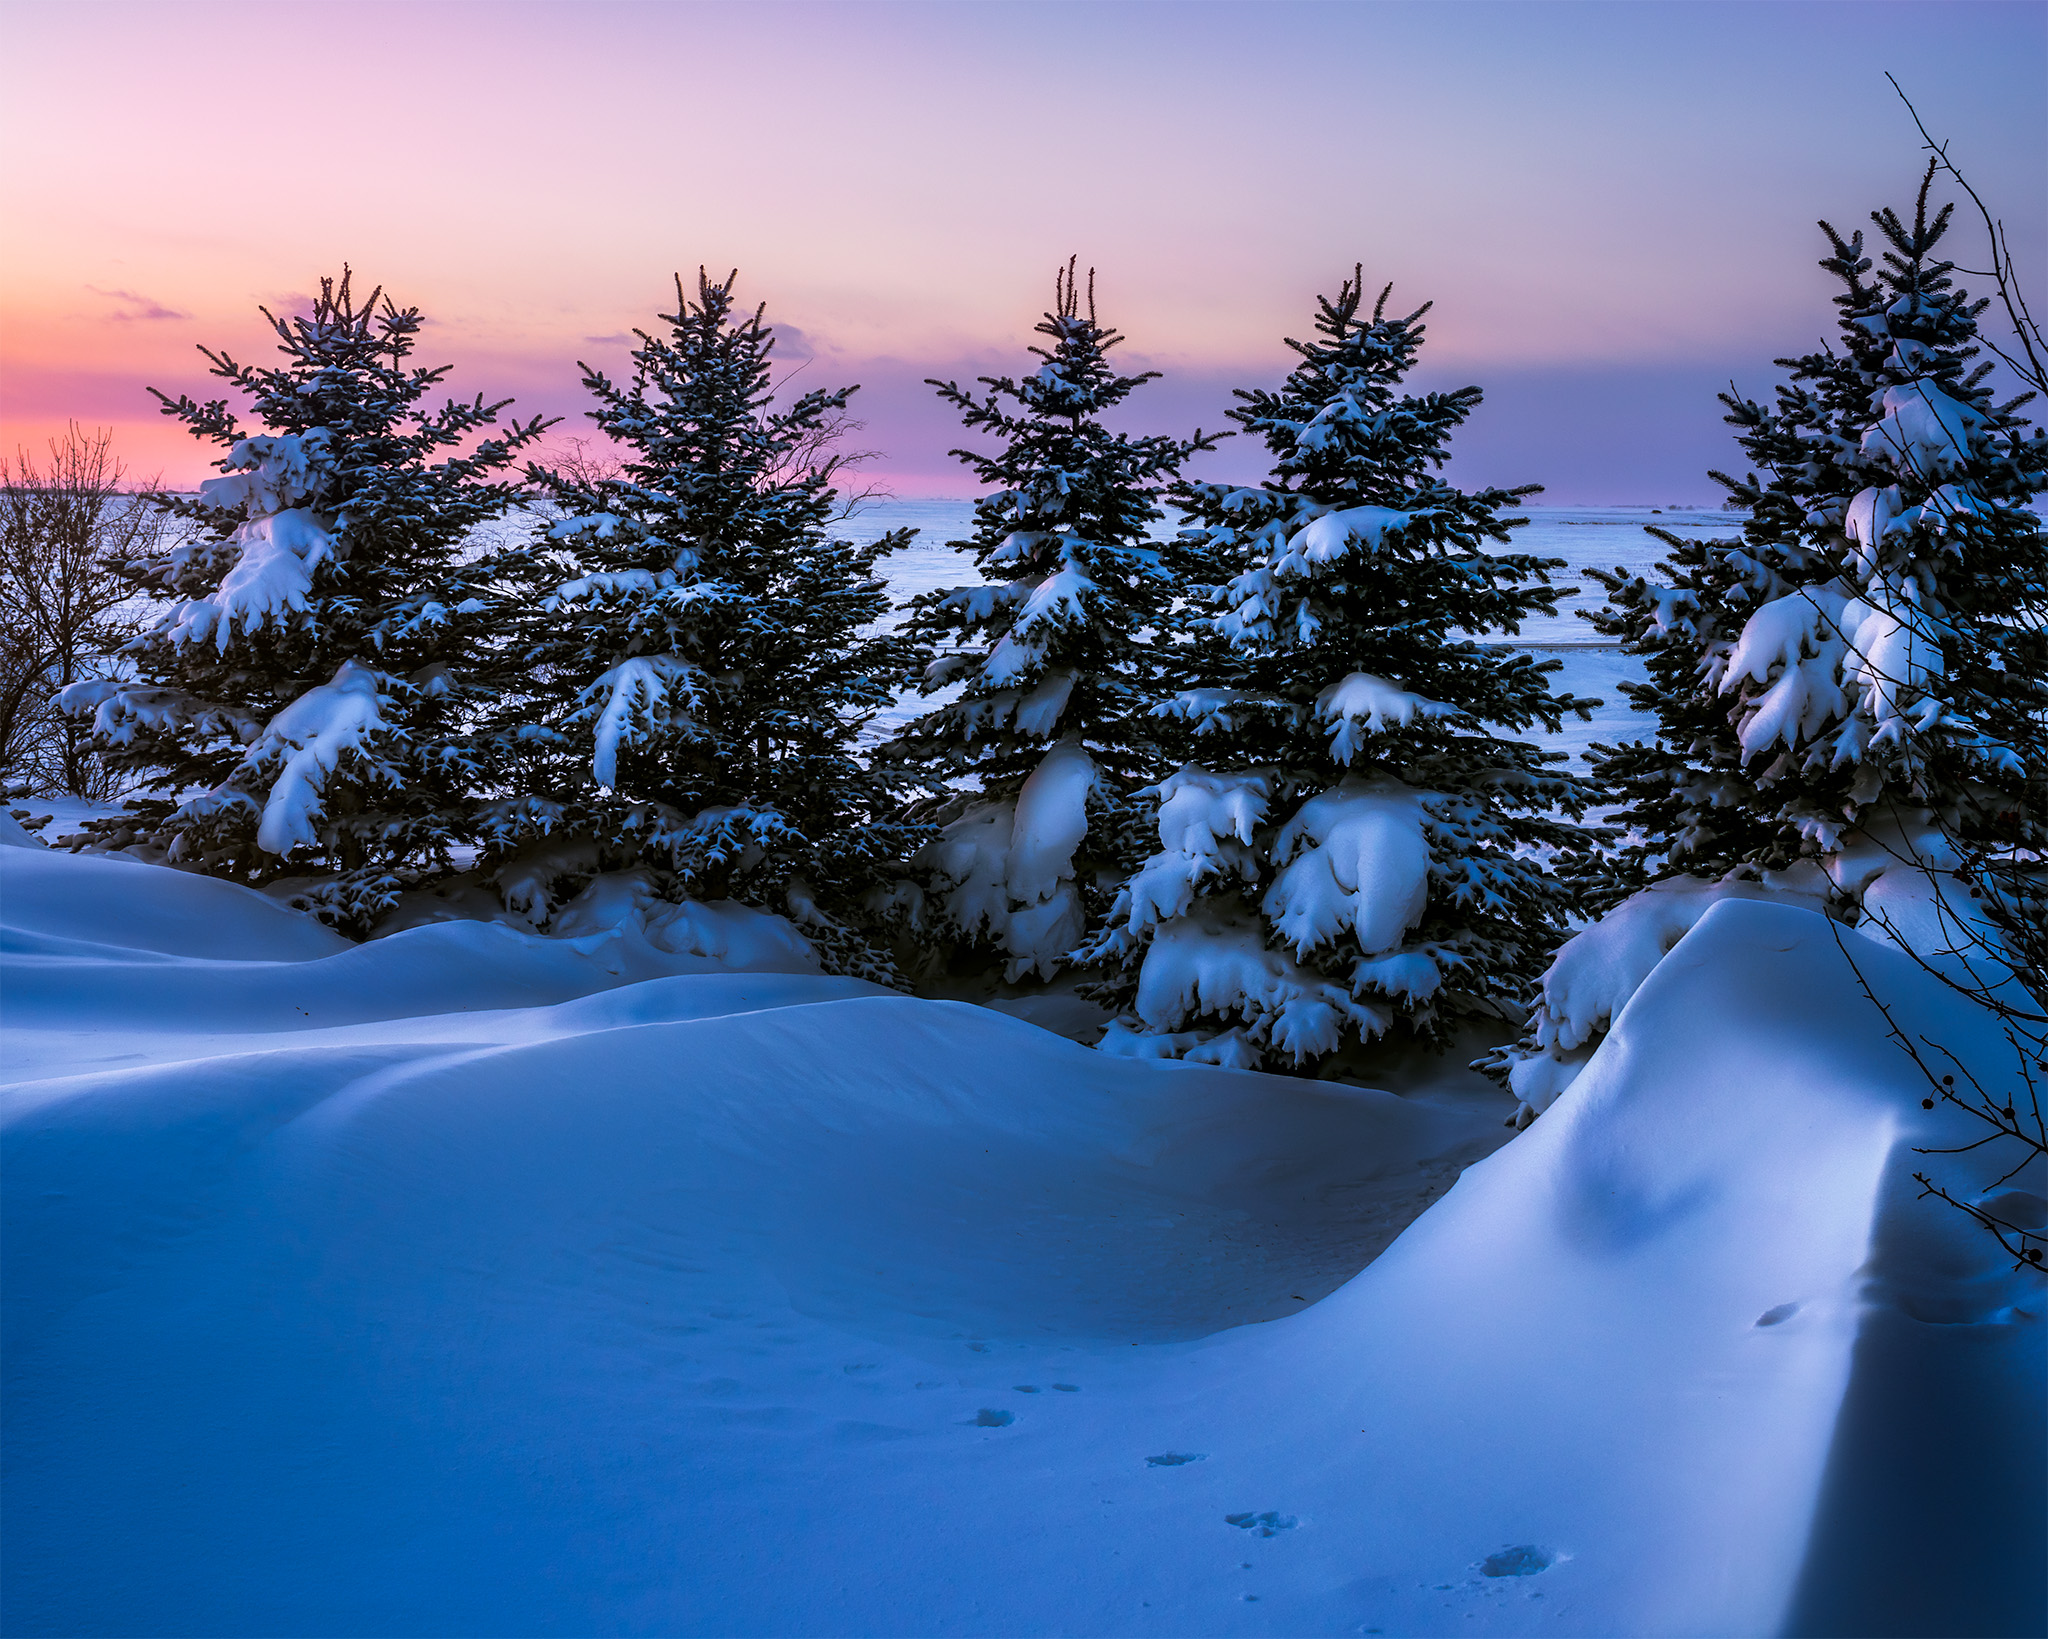 Landscape Photography in Saskatchewan. Snow and evergreen trees with a sunset behind